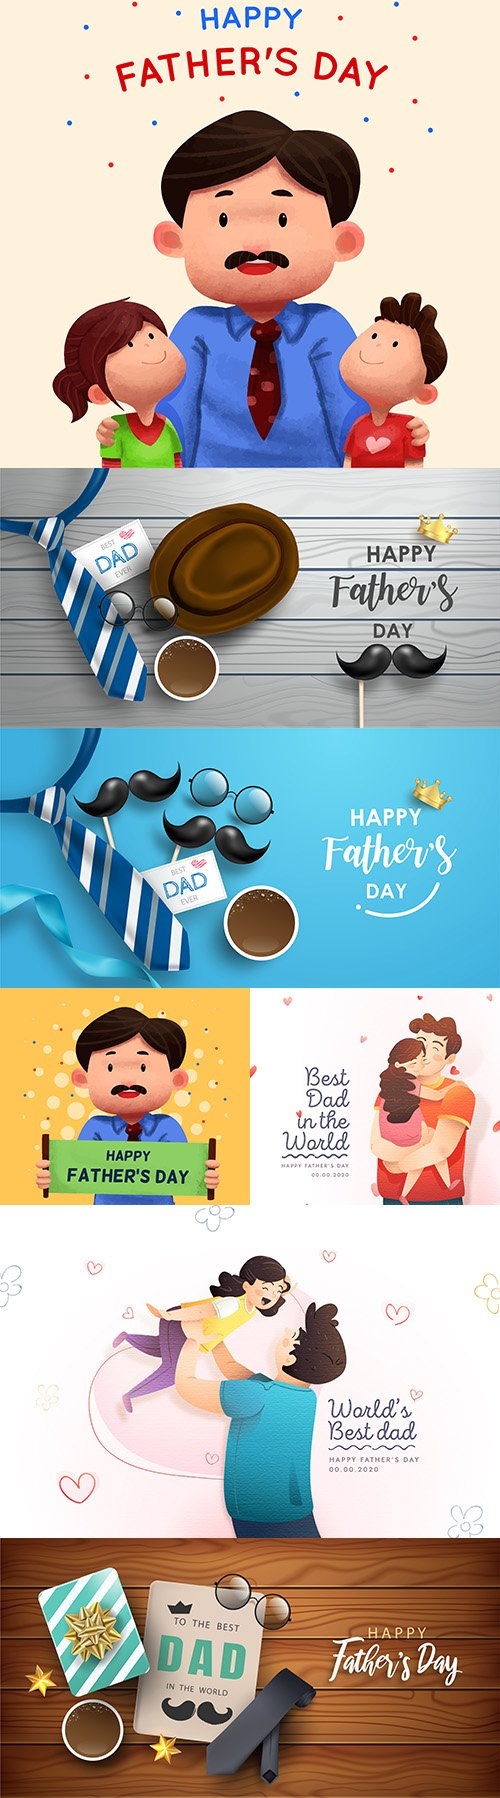 Happy Father 's Day design greeting card and banner 5